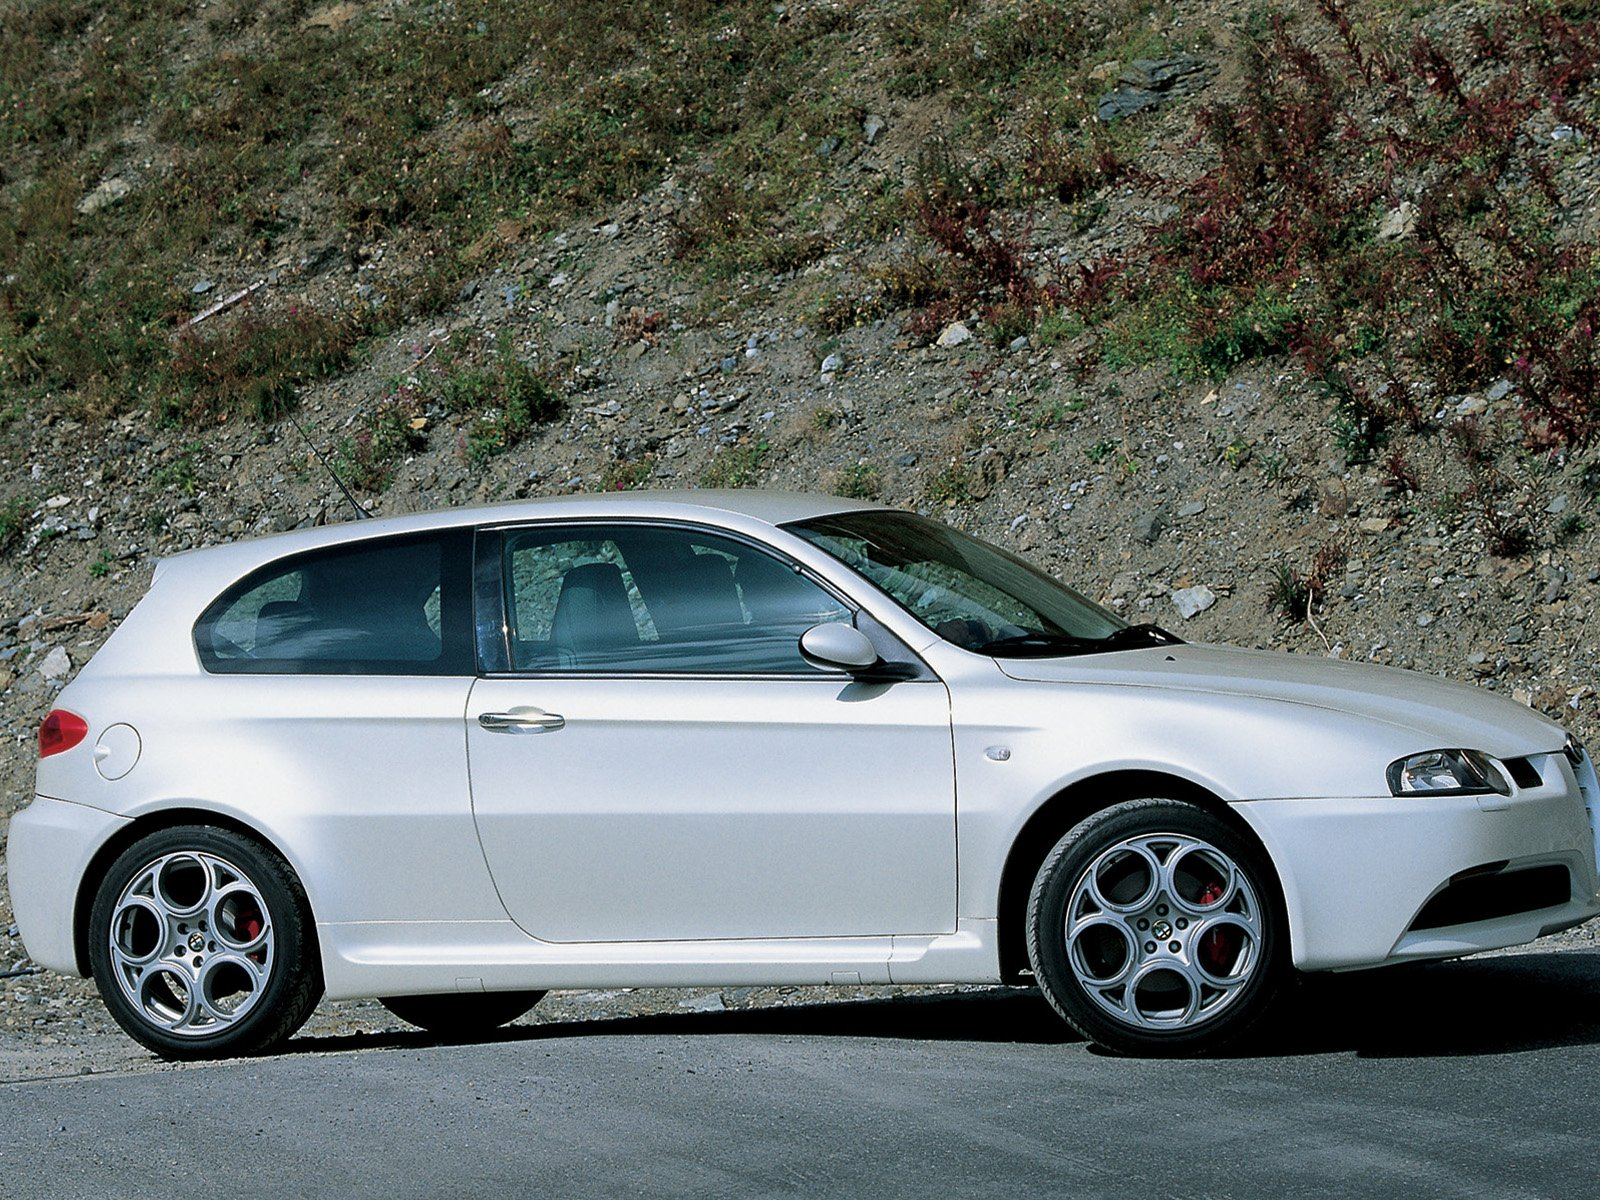 alfa romeo 147 gta picture 9115 alfa romeo photo gallery. Black Bedroom Furniture Sets. Home Design Ideas